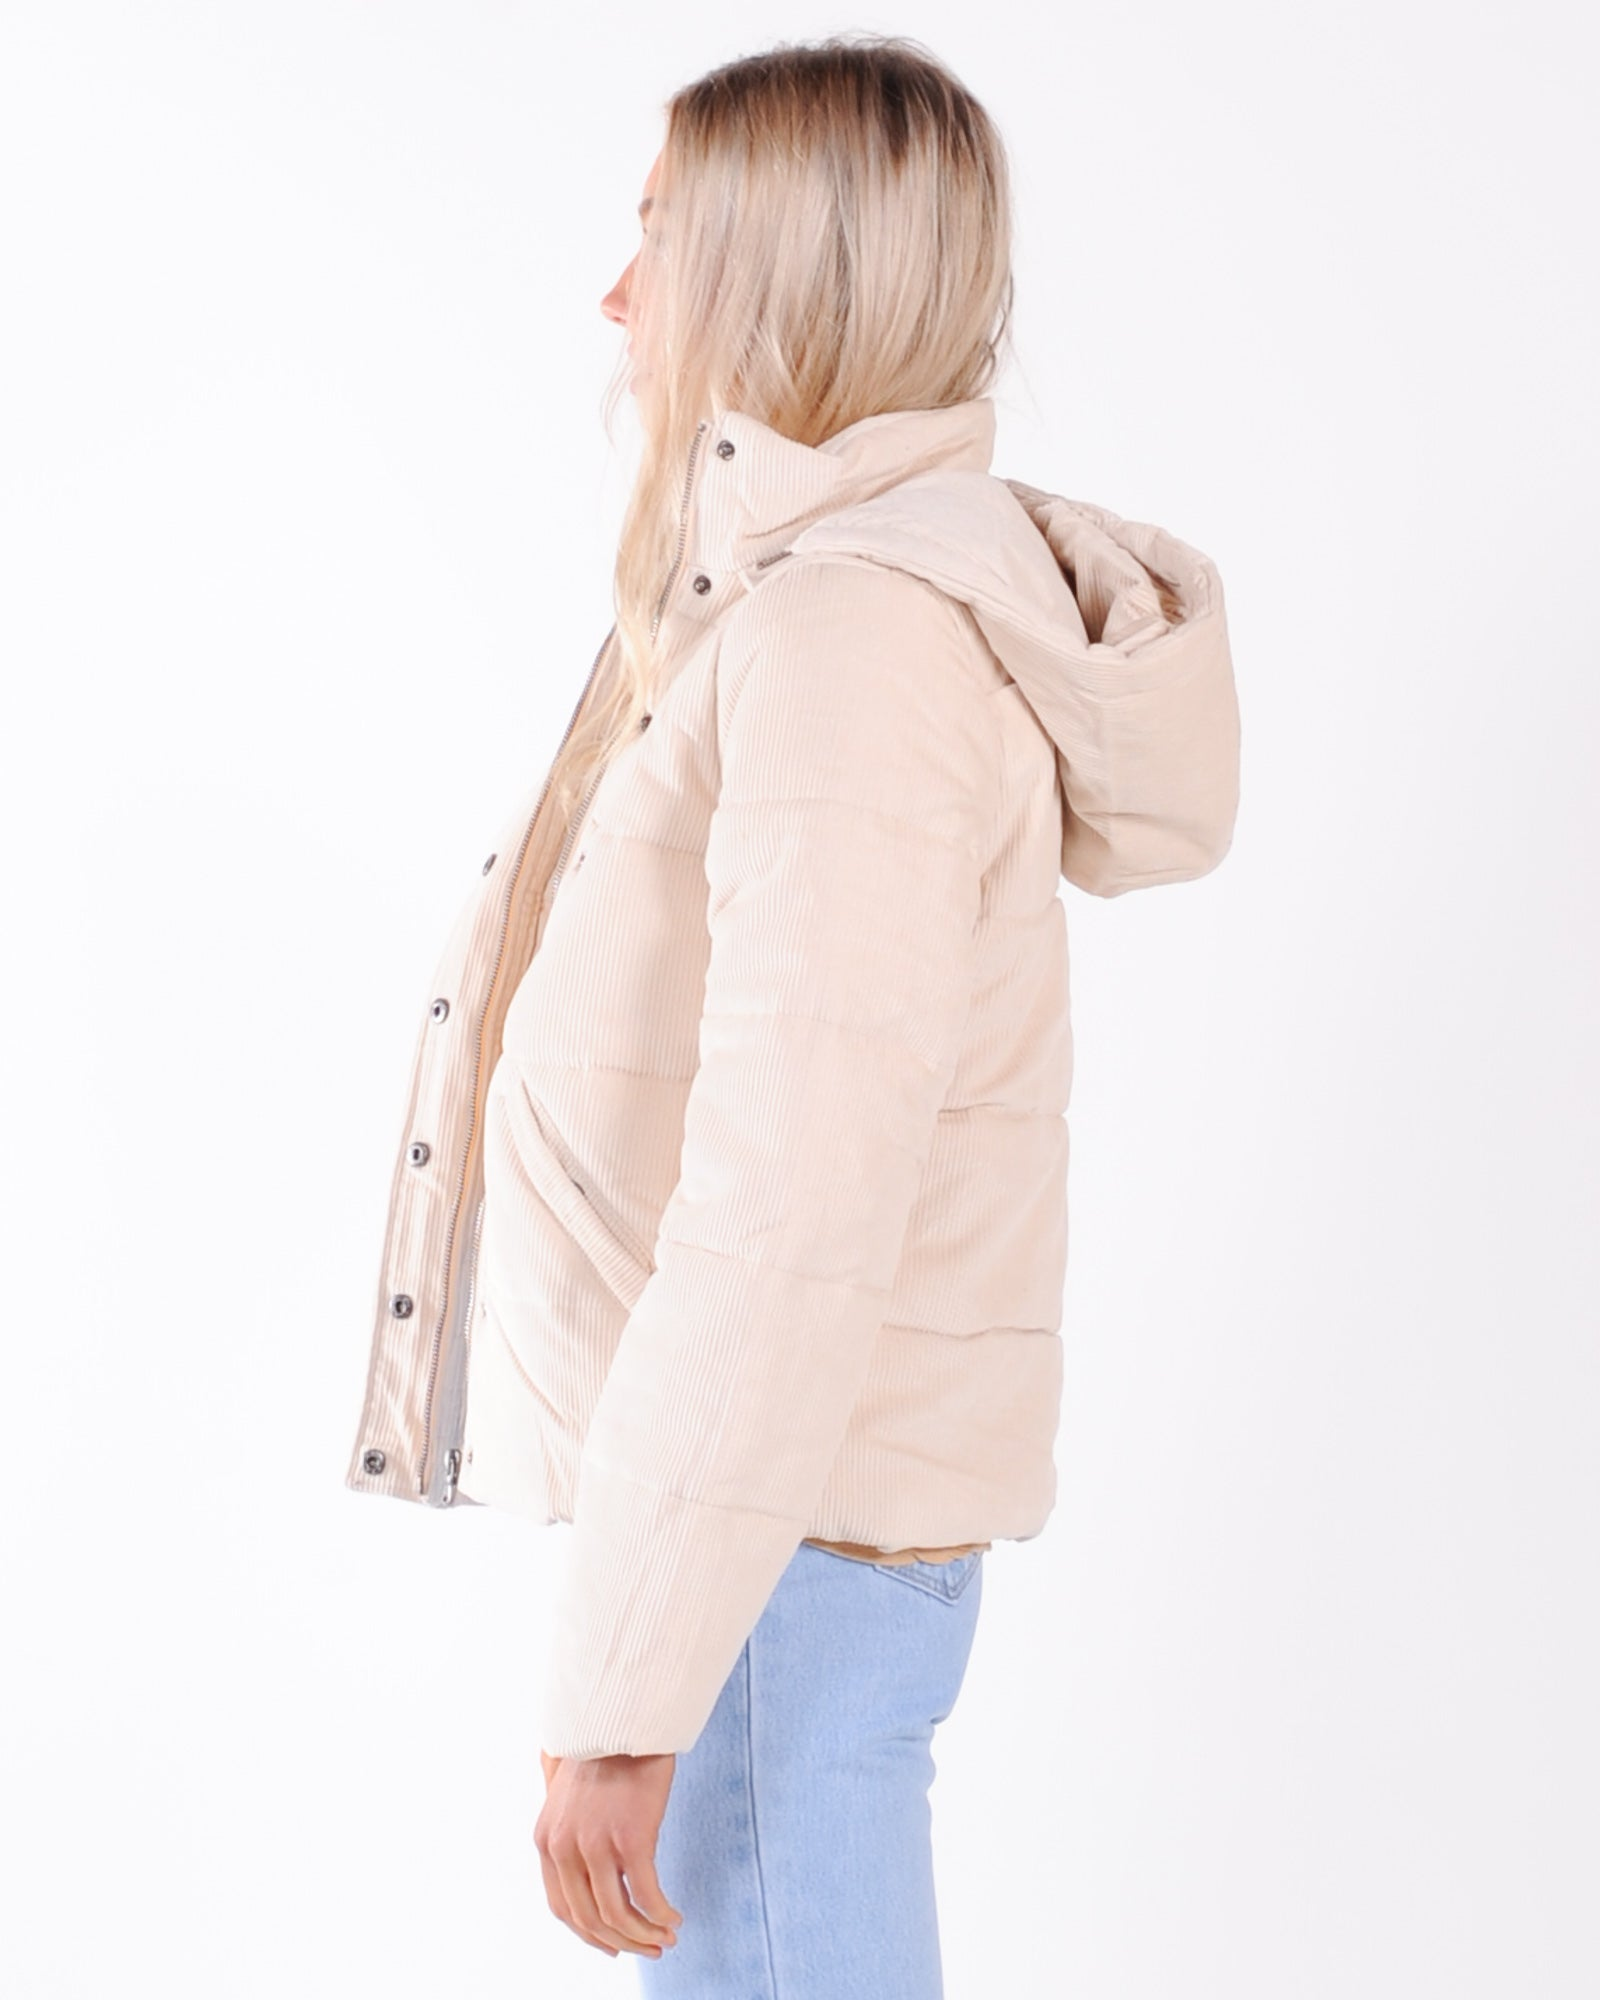 All About Eve Cali Cord Puffer Jacket - Vintage White